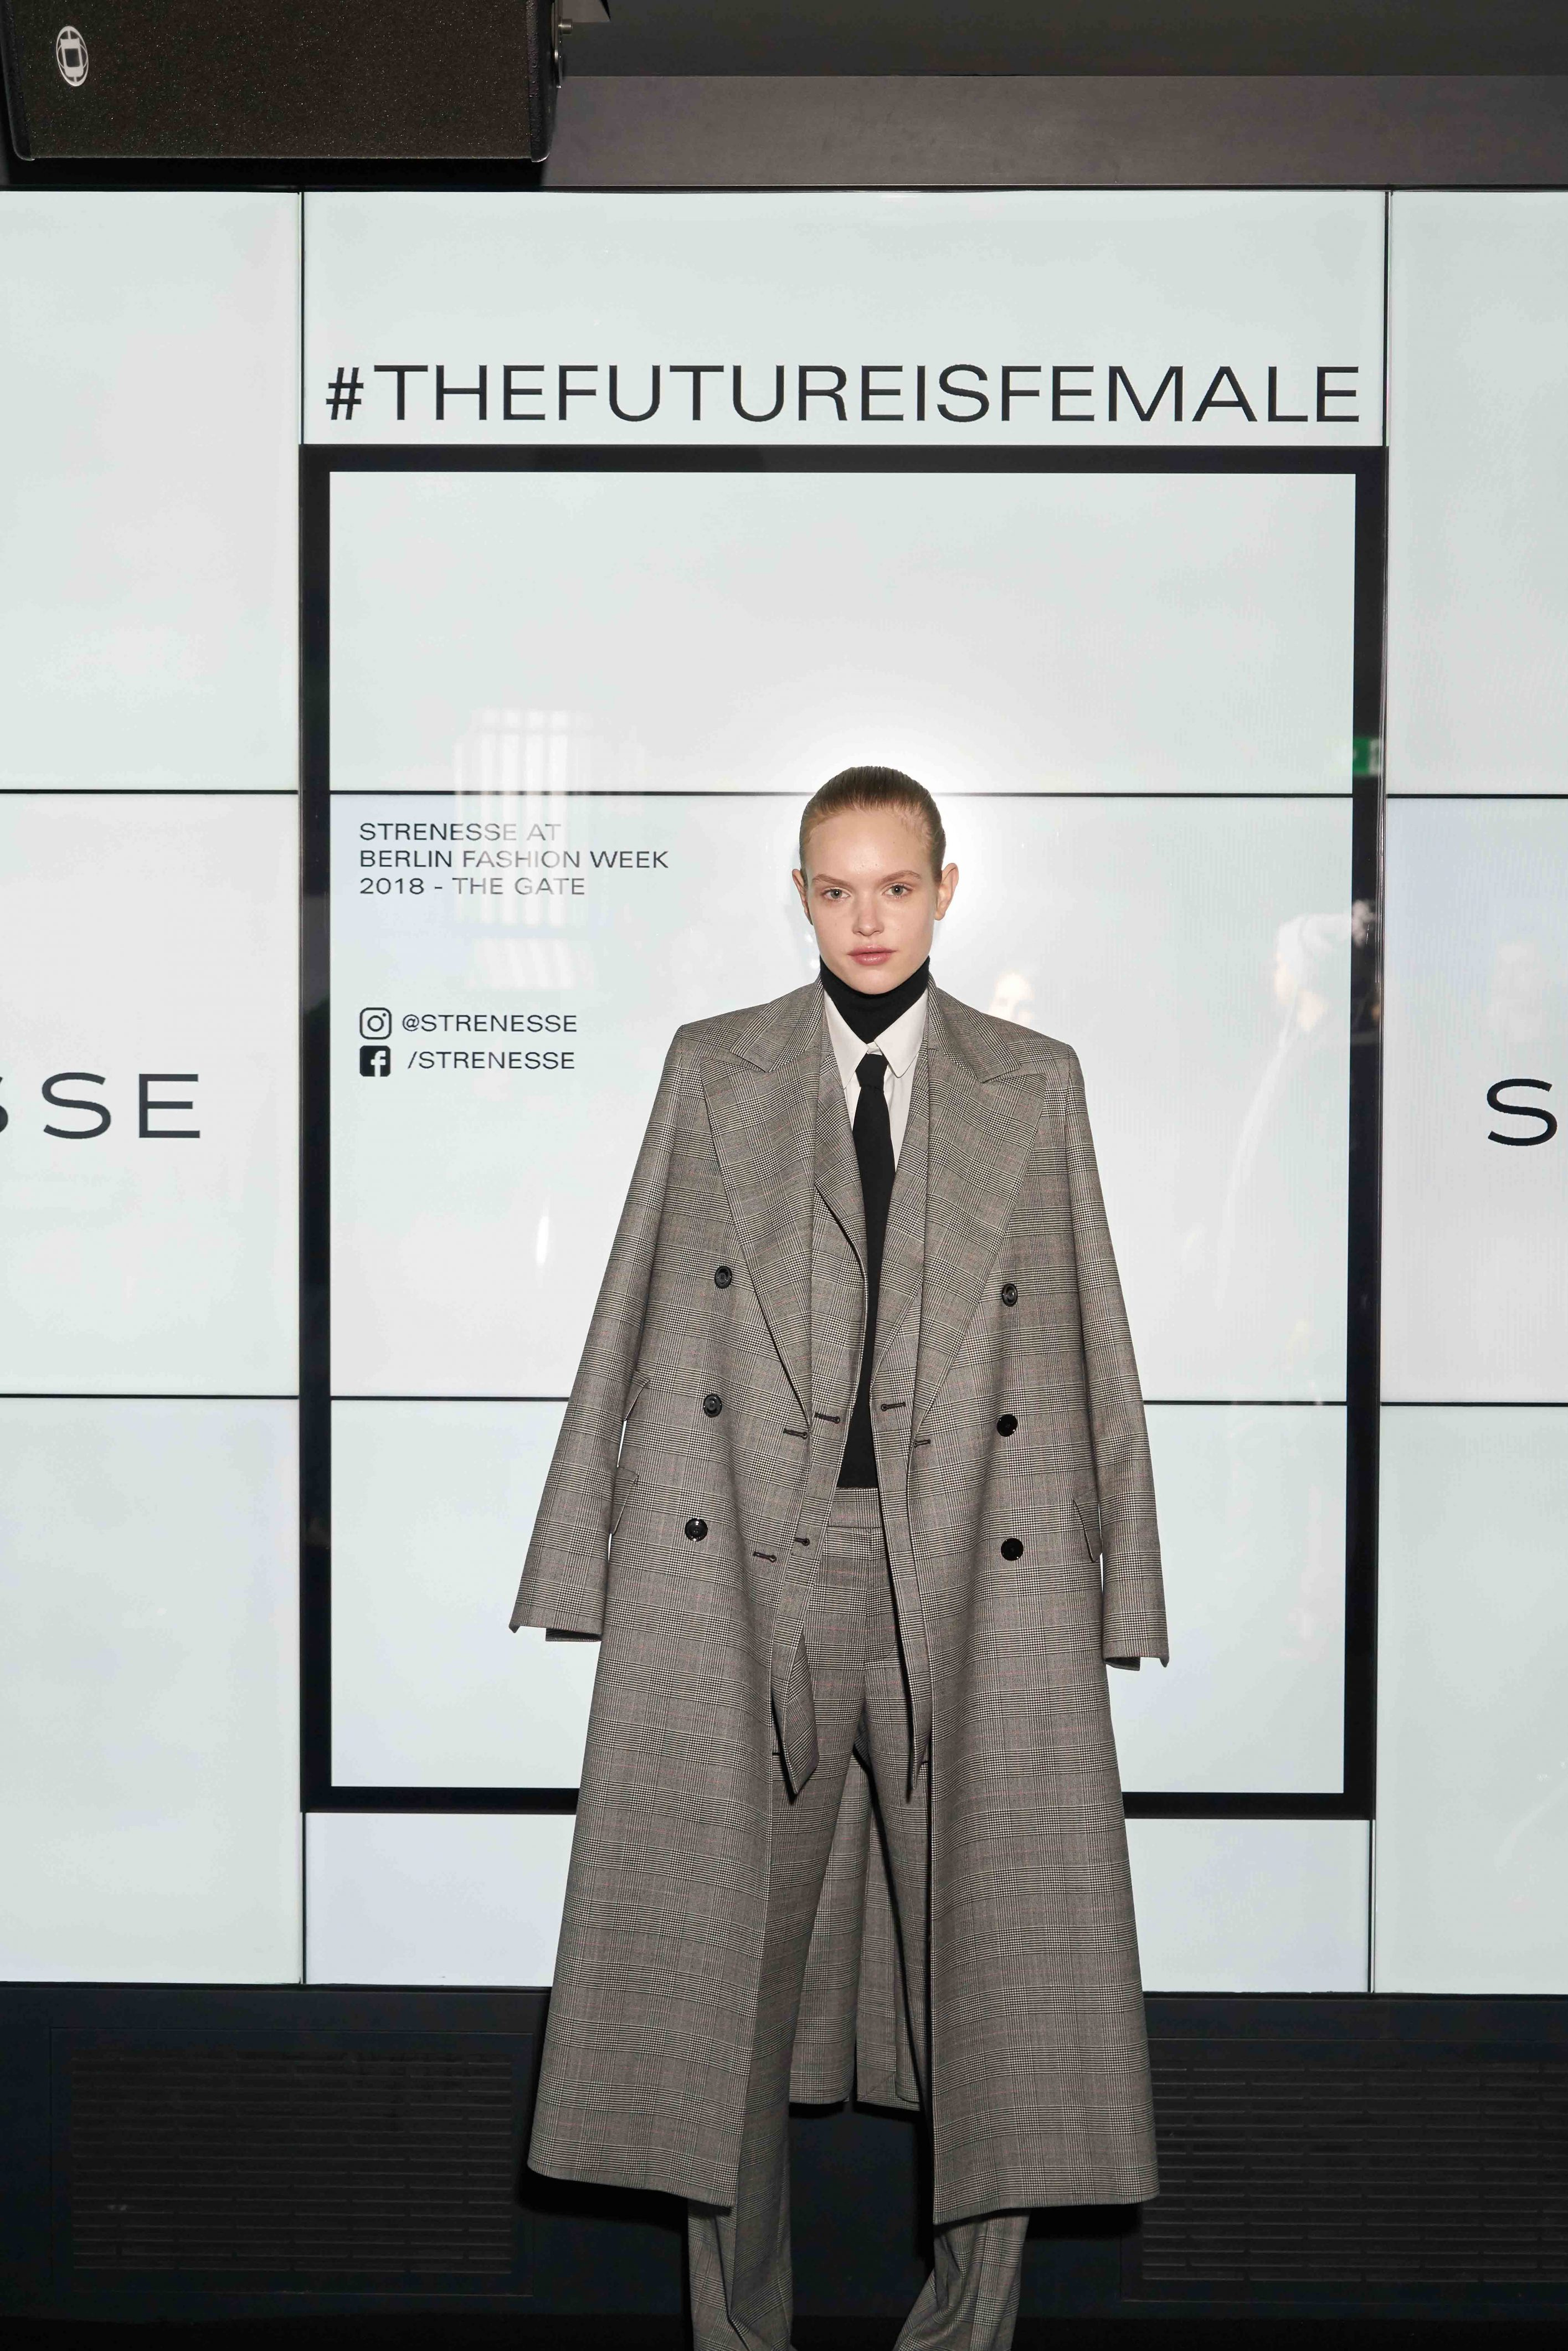 STRENESSE_BMS_16.01.2018_Look 8 Herbst winter Trends 2018 Karo karriert Modeblog AUTUMN WINTER 2018 2019